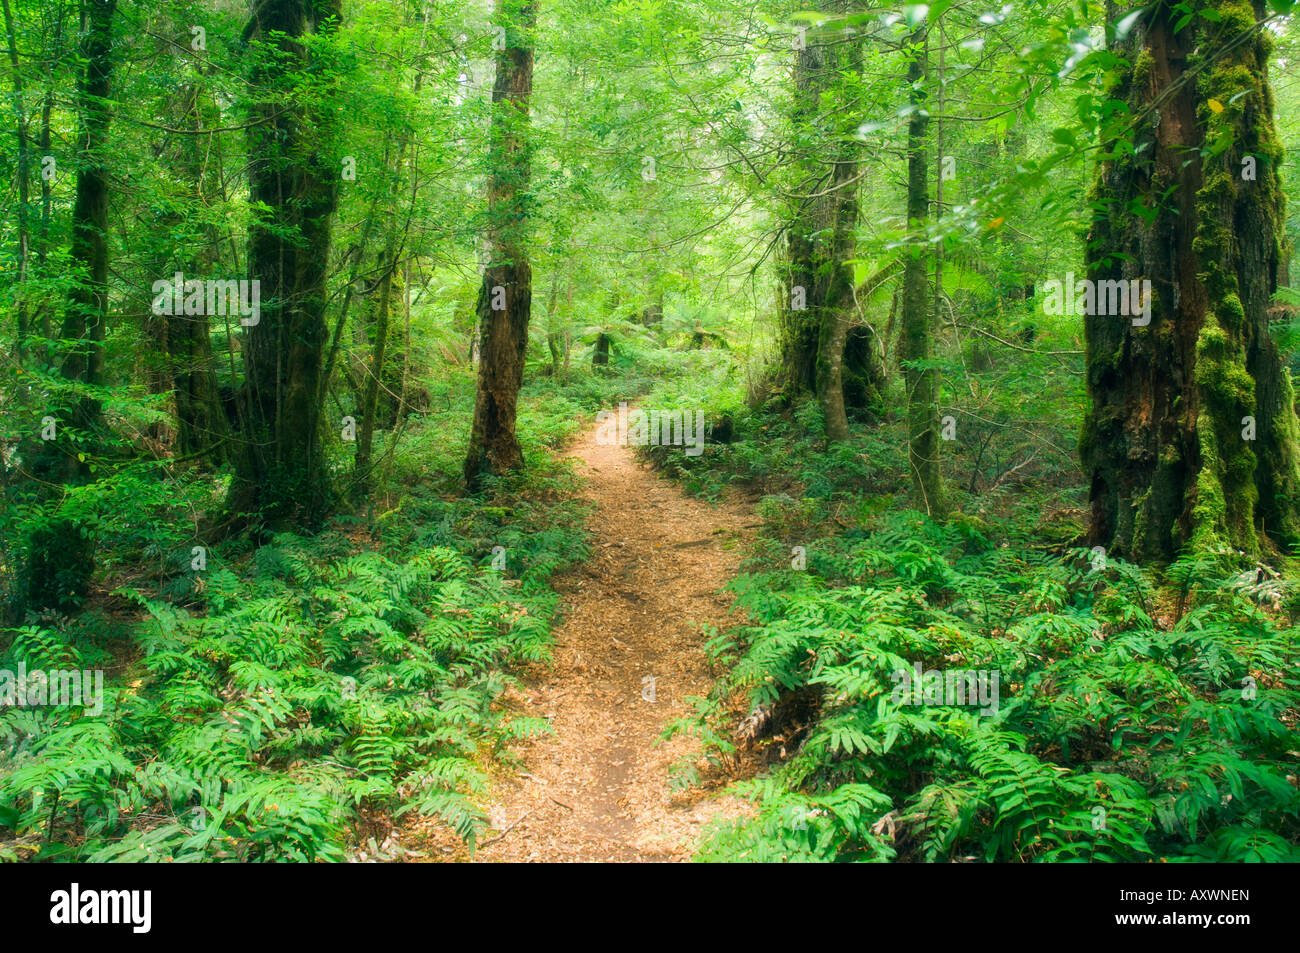 Footpath through Myrtle Beech Trees in the temperate rainforest, Yarra Ranges National Park, Victoria, Australia, - Stock Image